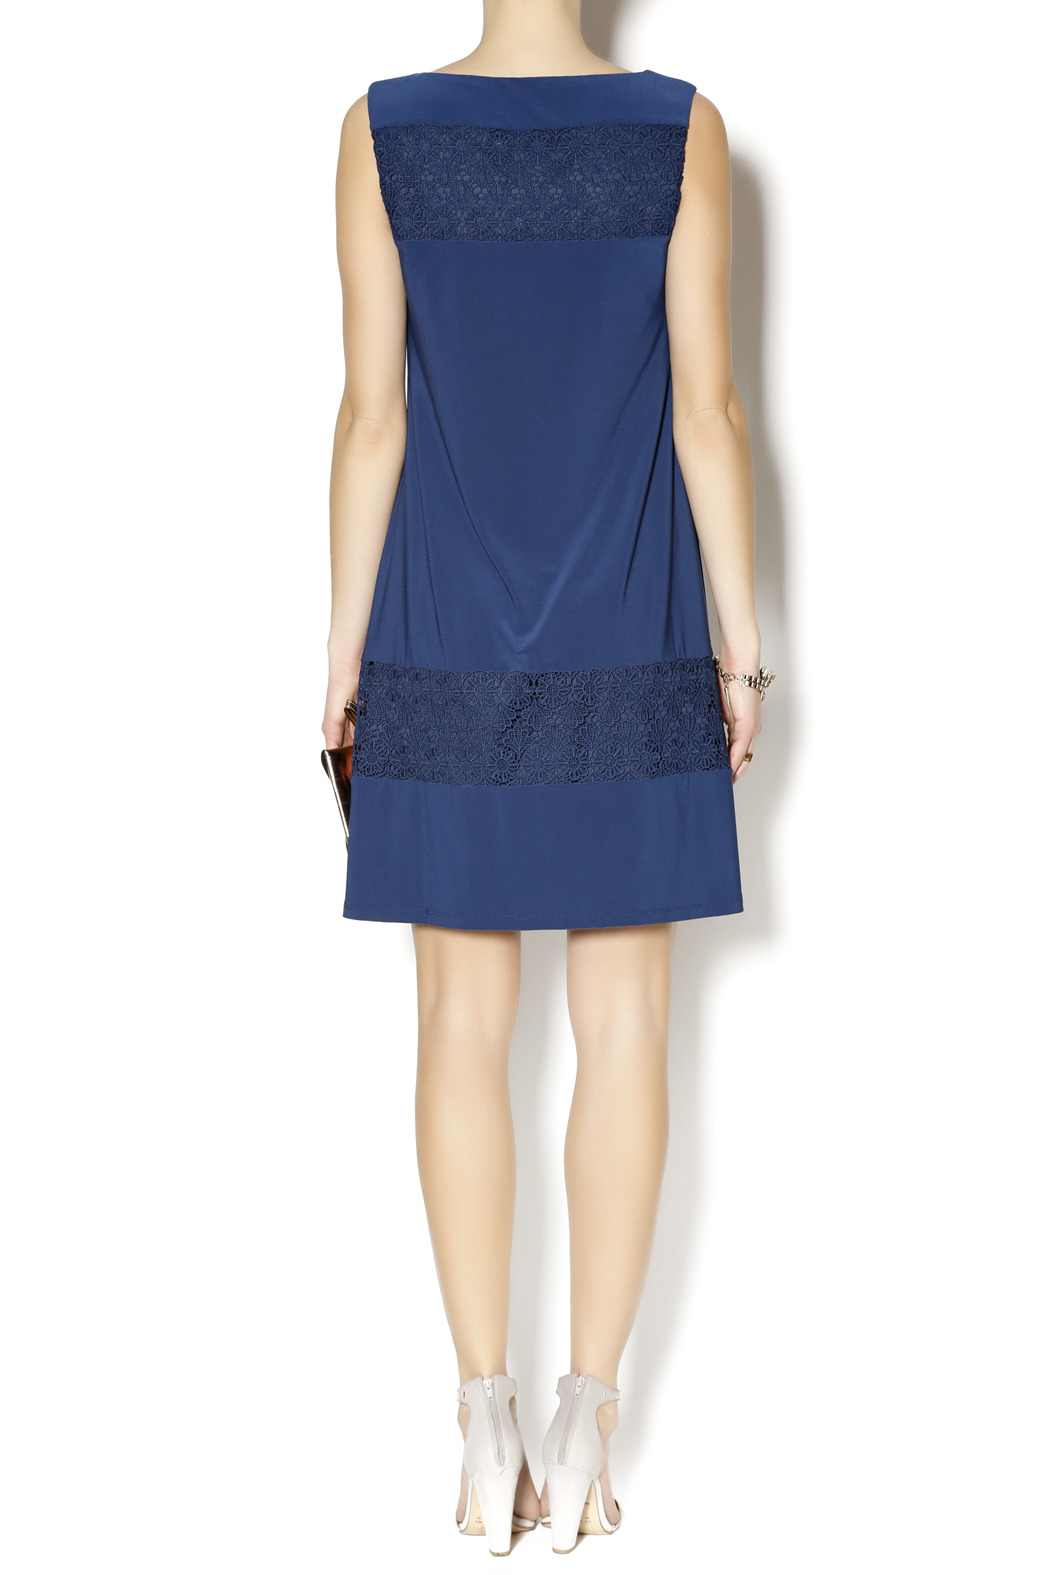 Missy Robertson Sophisticated Dress - Back Cropped Image